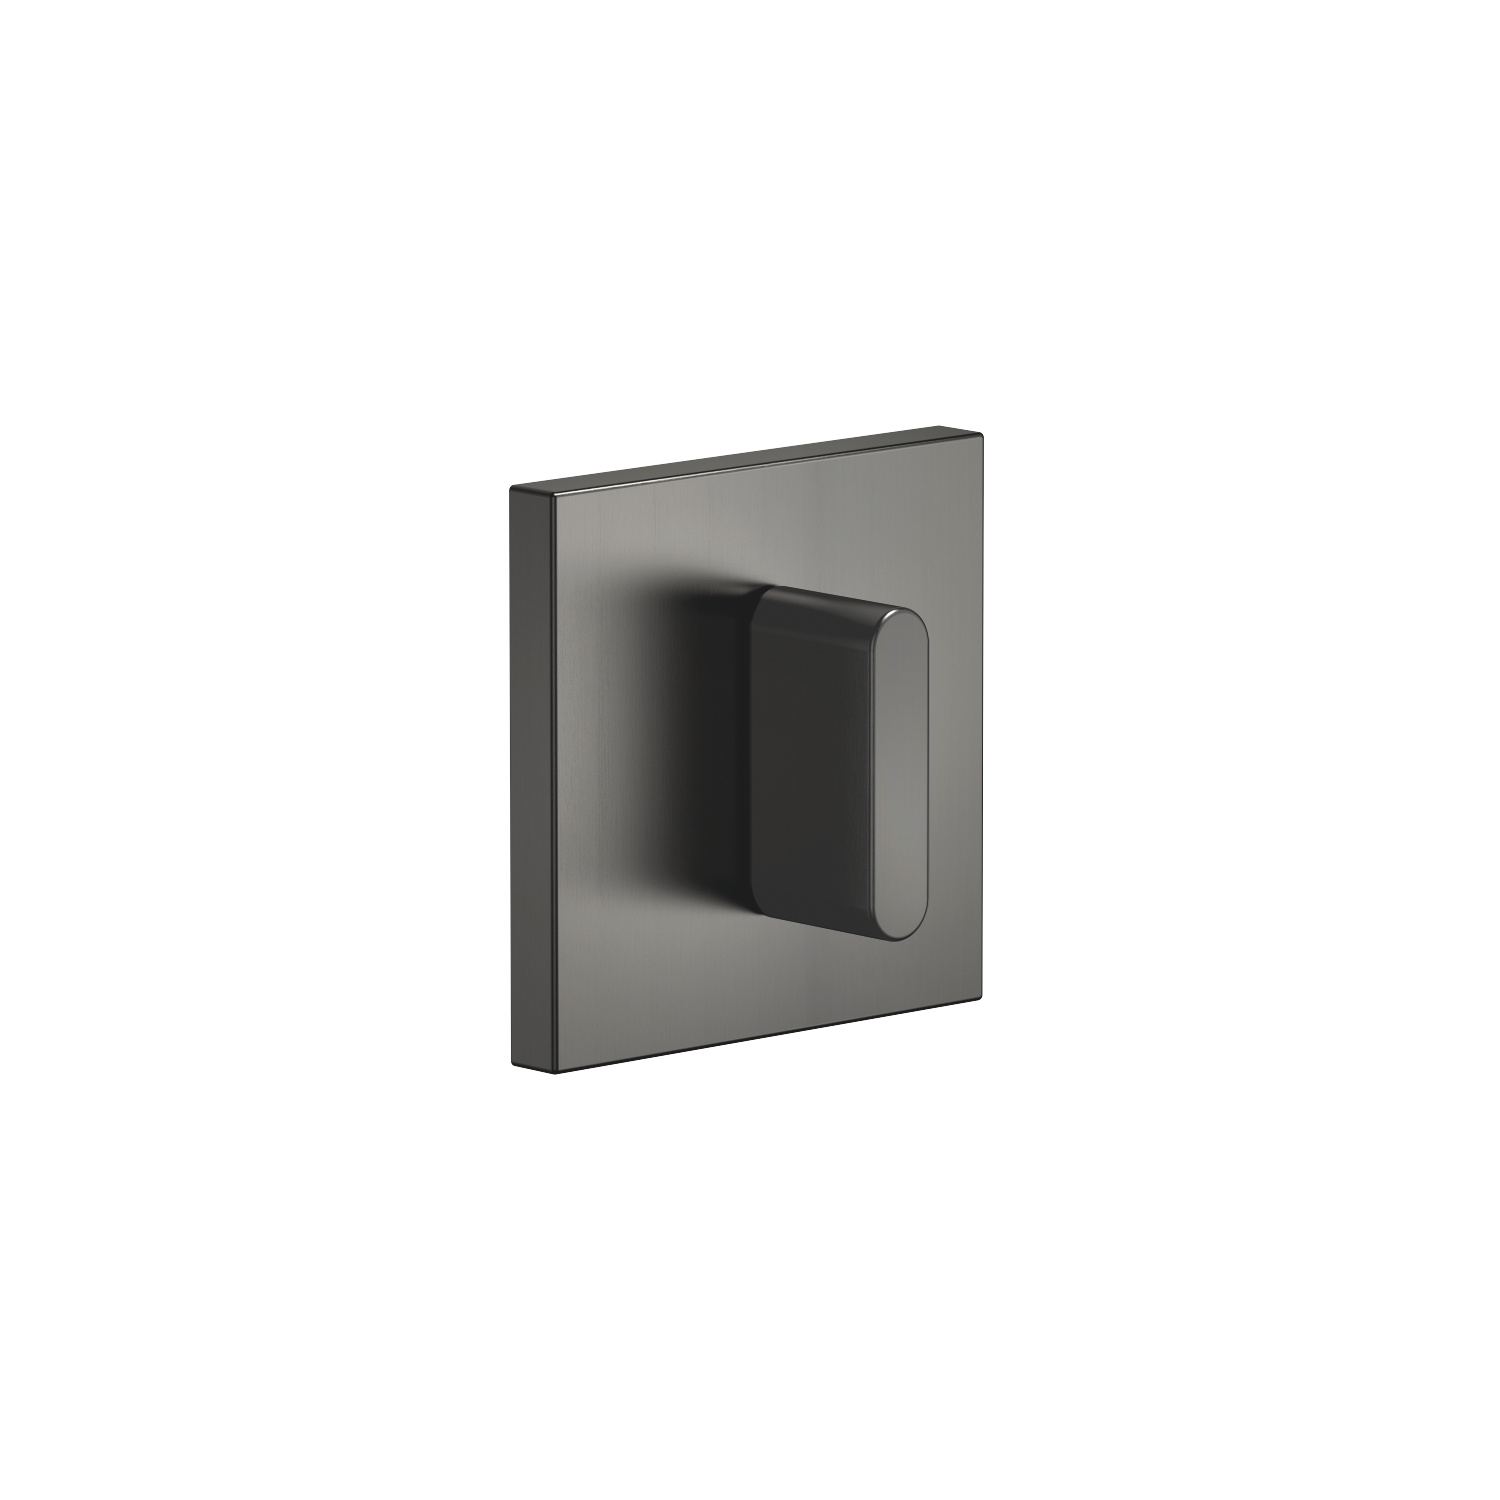 Concealed two- and three-way diverter - Dark Platinum matt